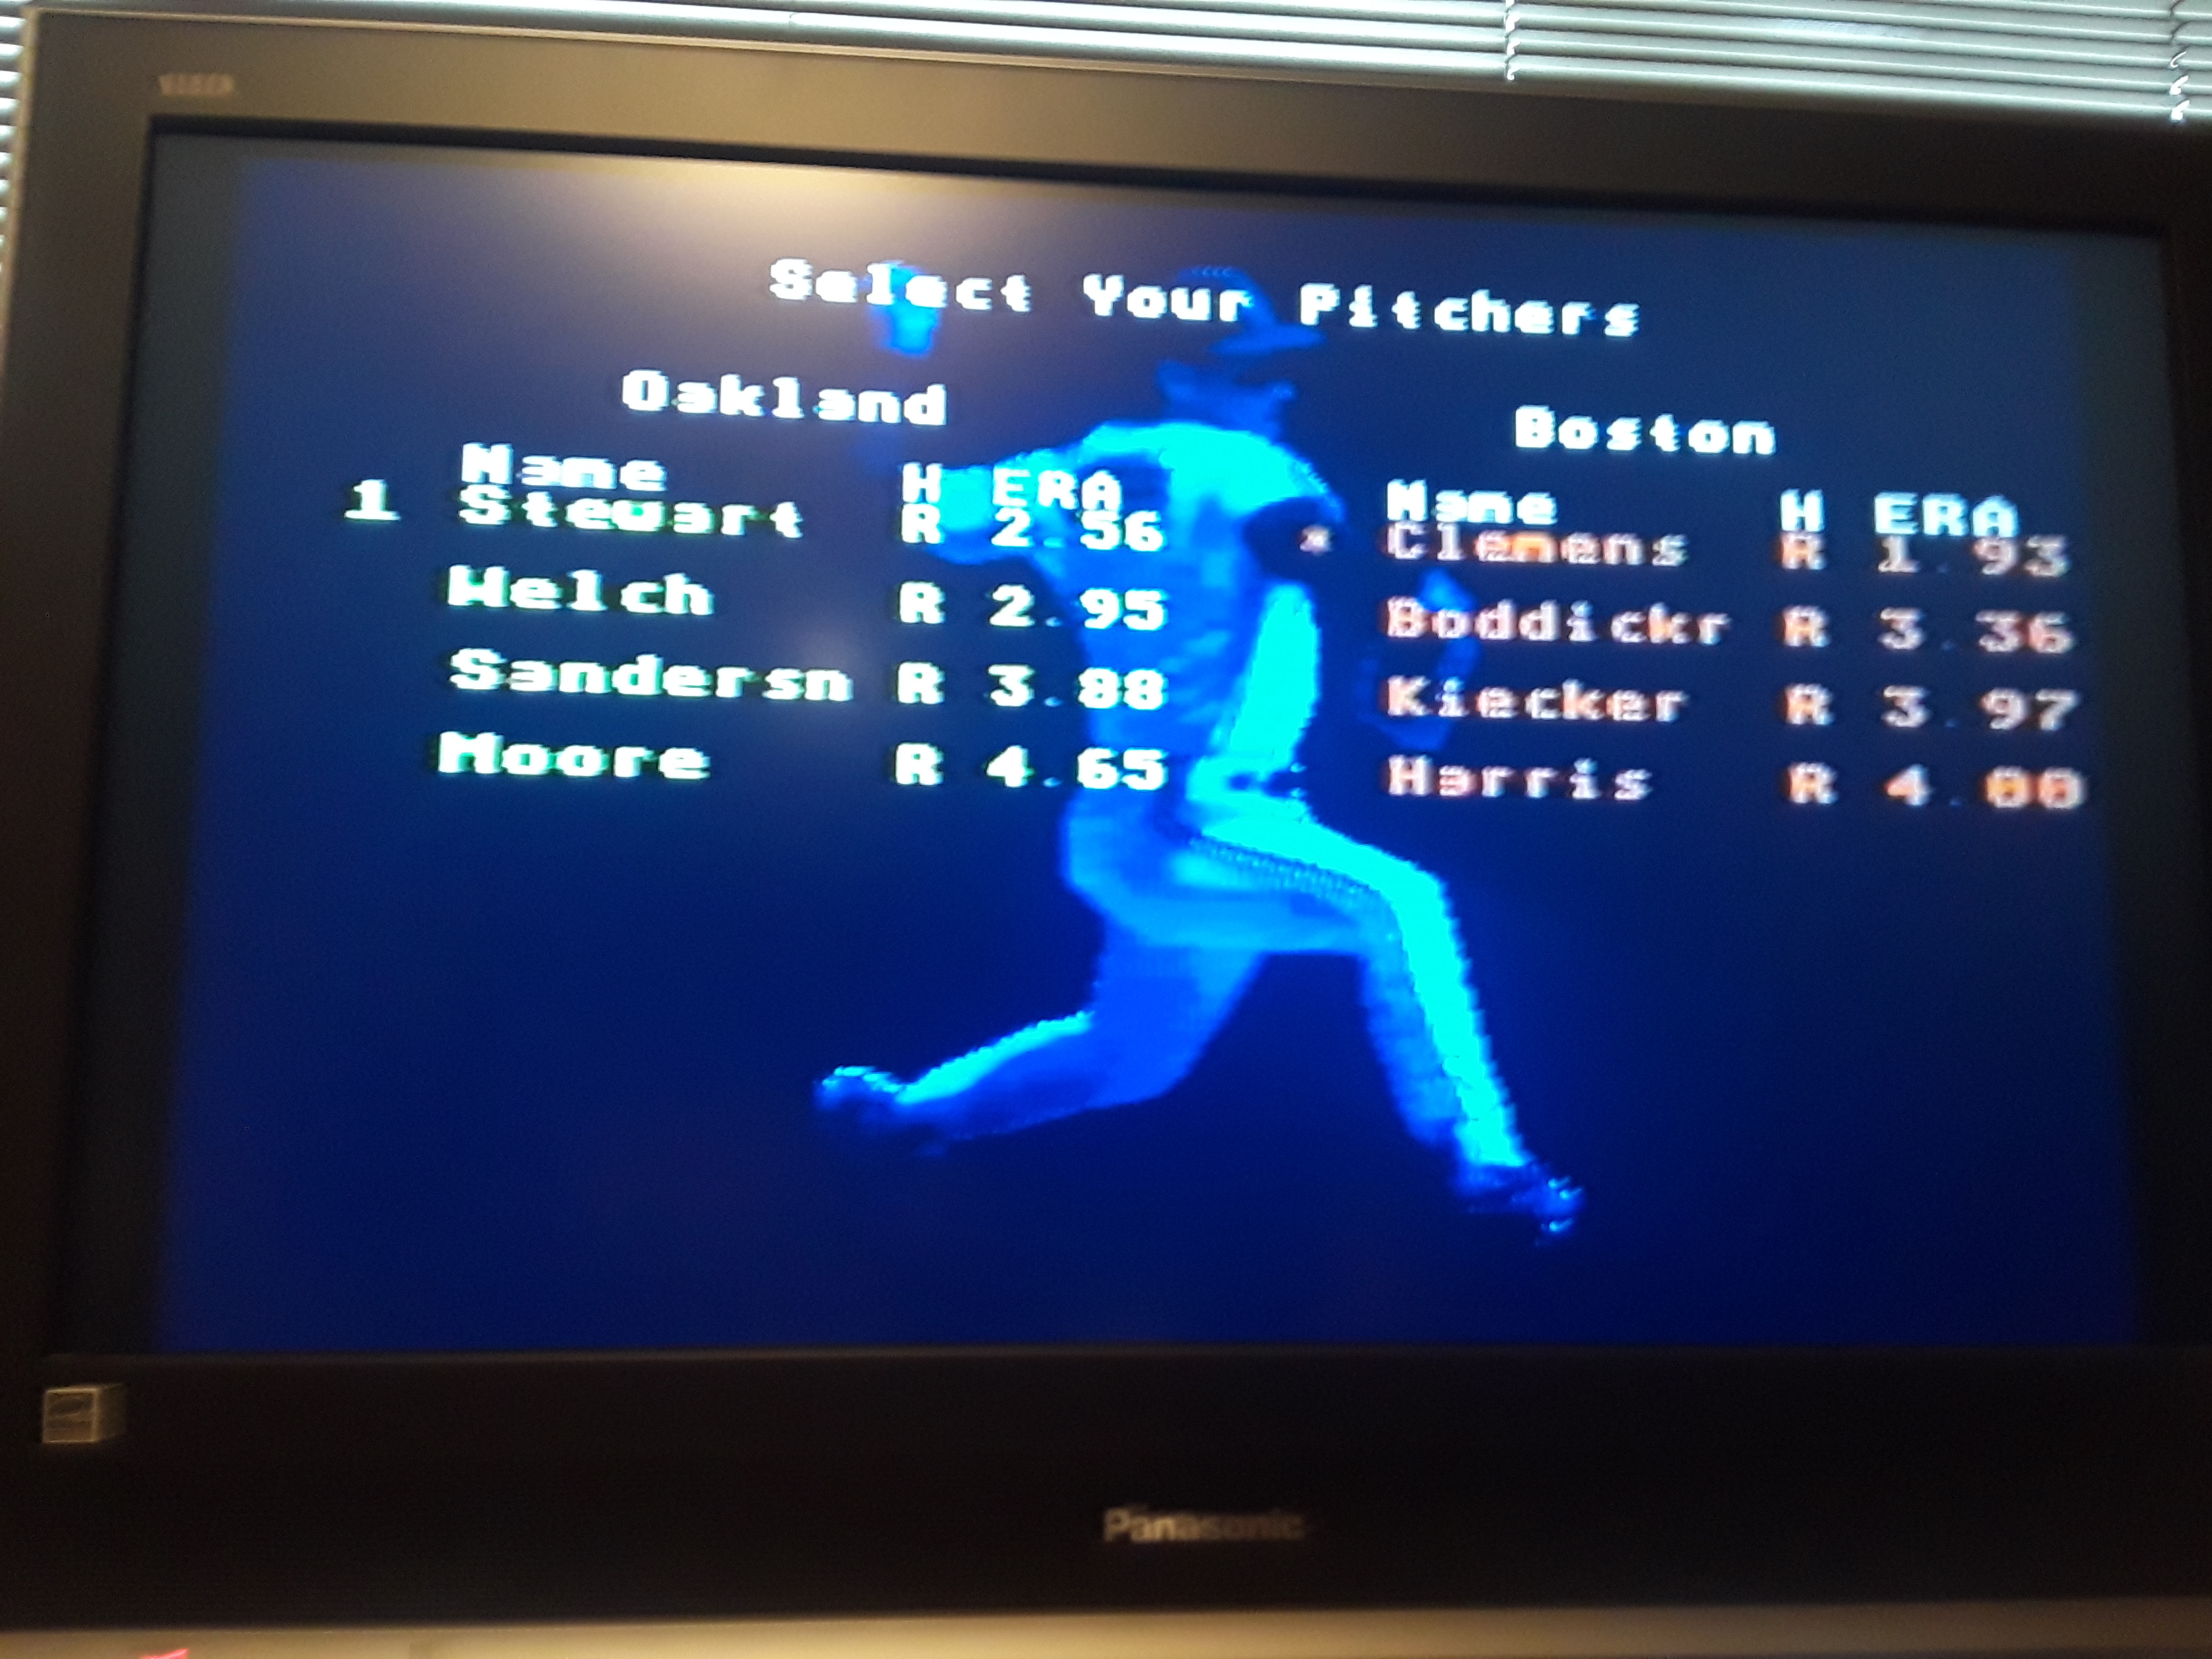 RBI Baseball 3 [Point Difference] 4 points